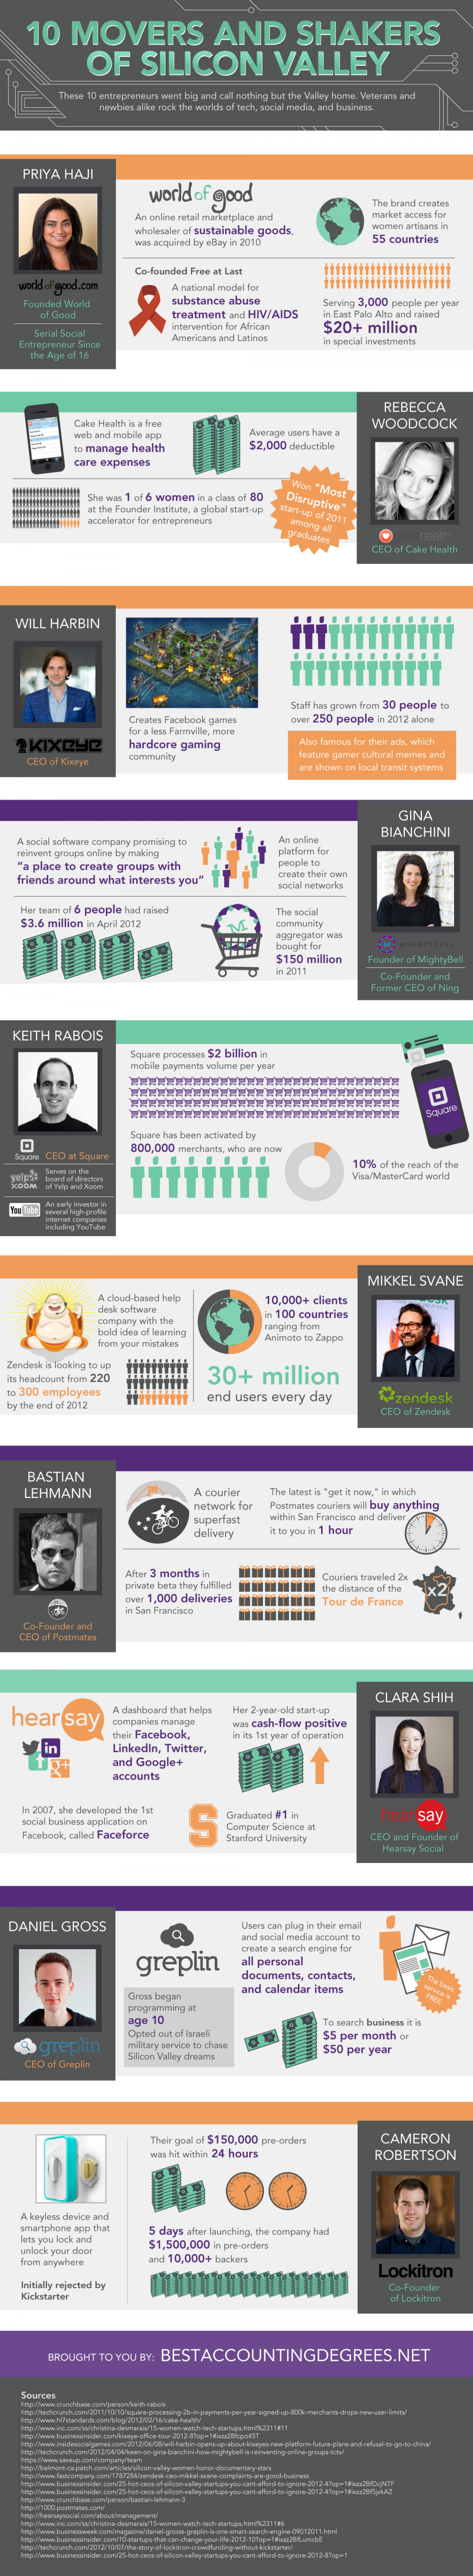 10 Movers and Shakers of Silicon Valley Infographic